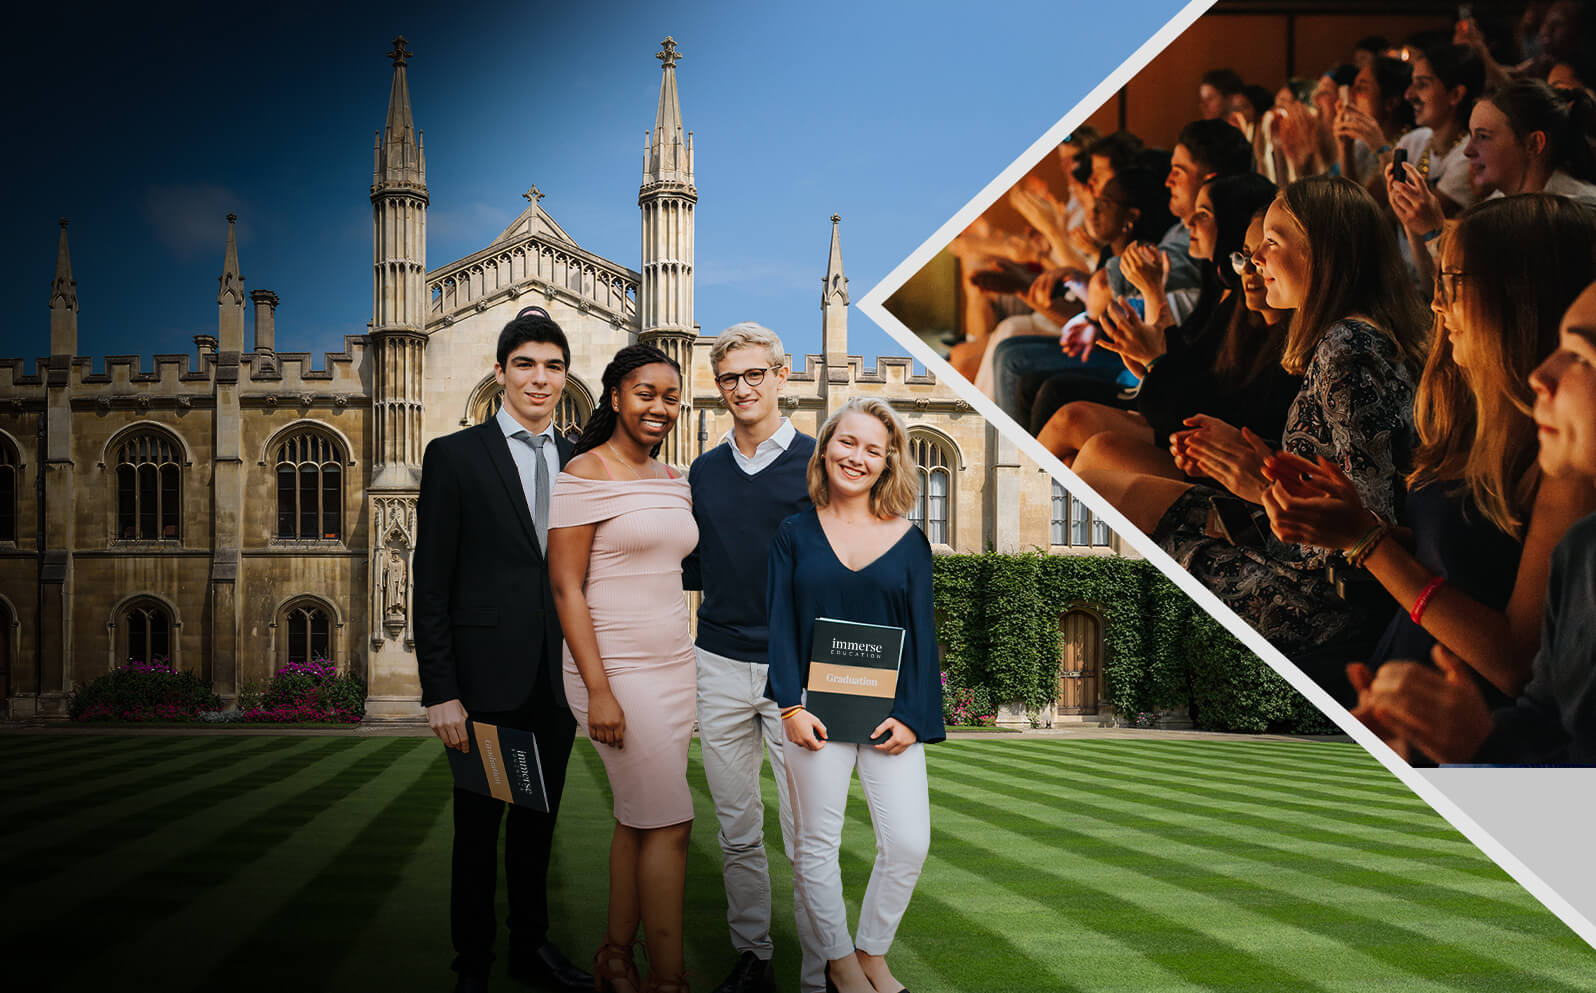 Cambridge Global Symposium Summer Program for Ages 16-18